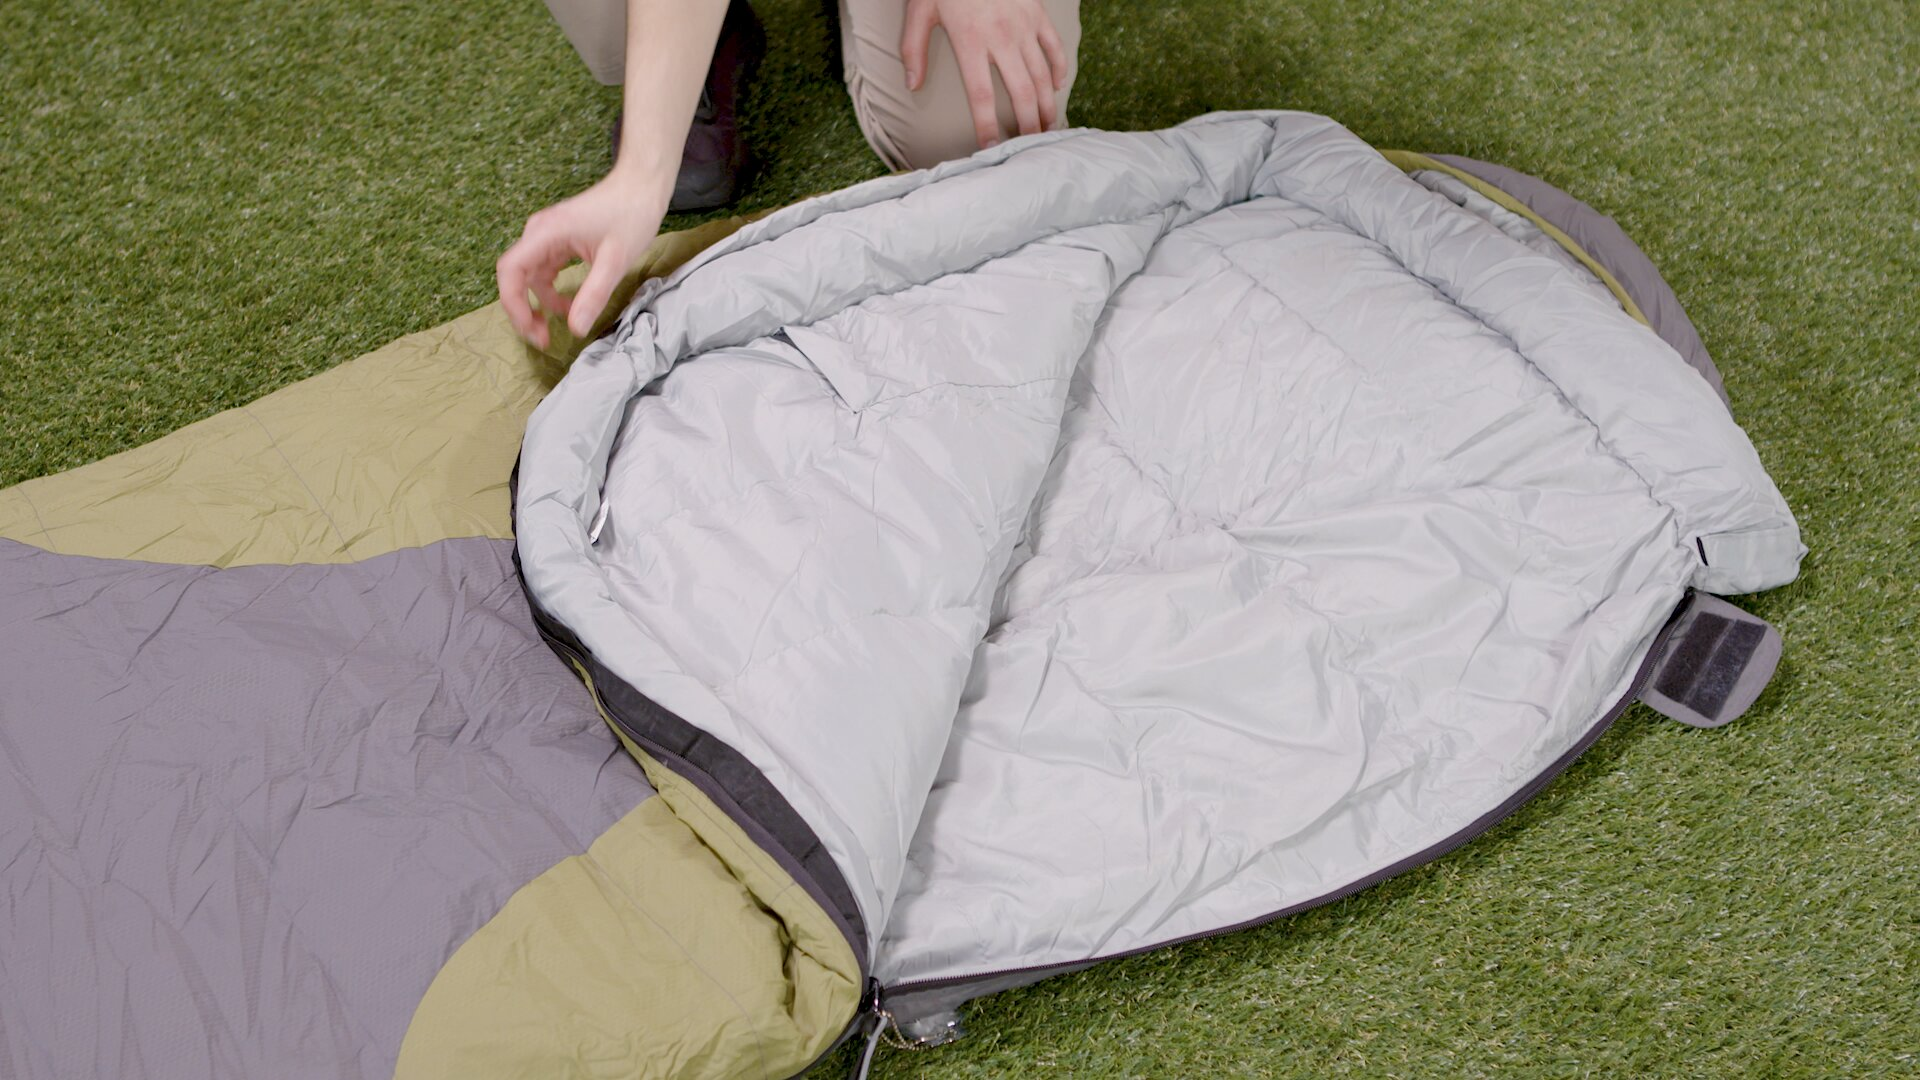 How To Choose A Sleeping Bag - Open Bag Fitting